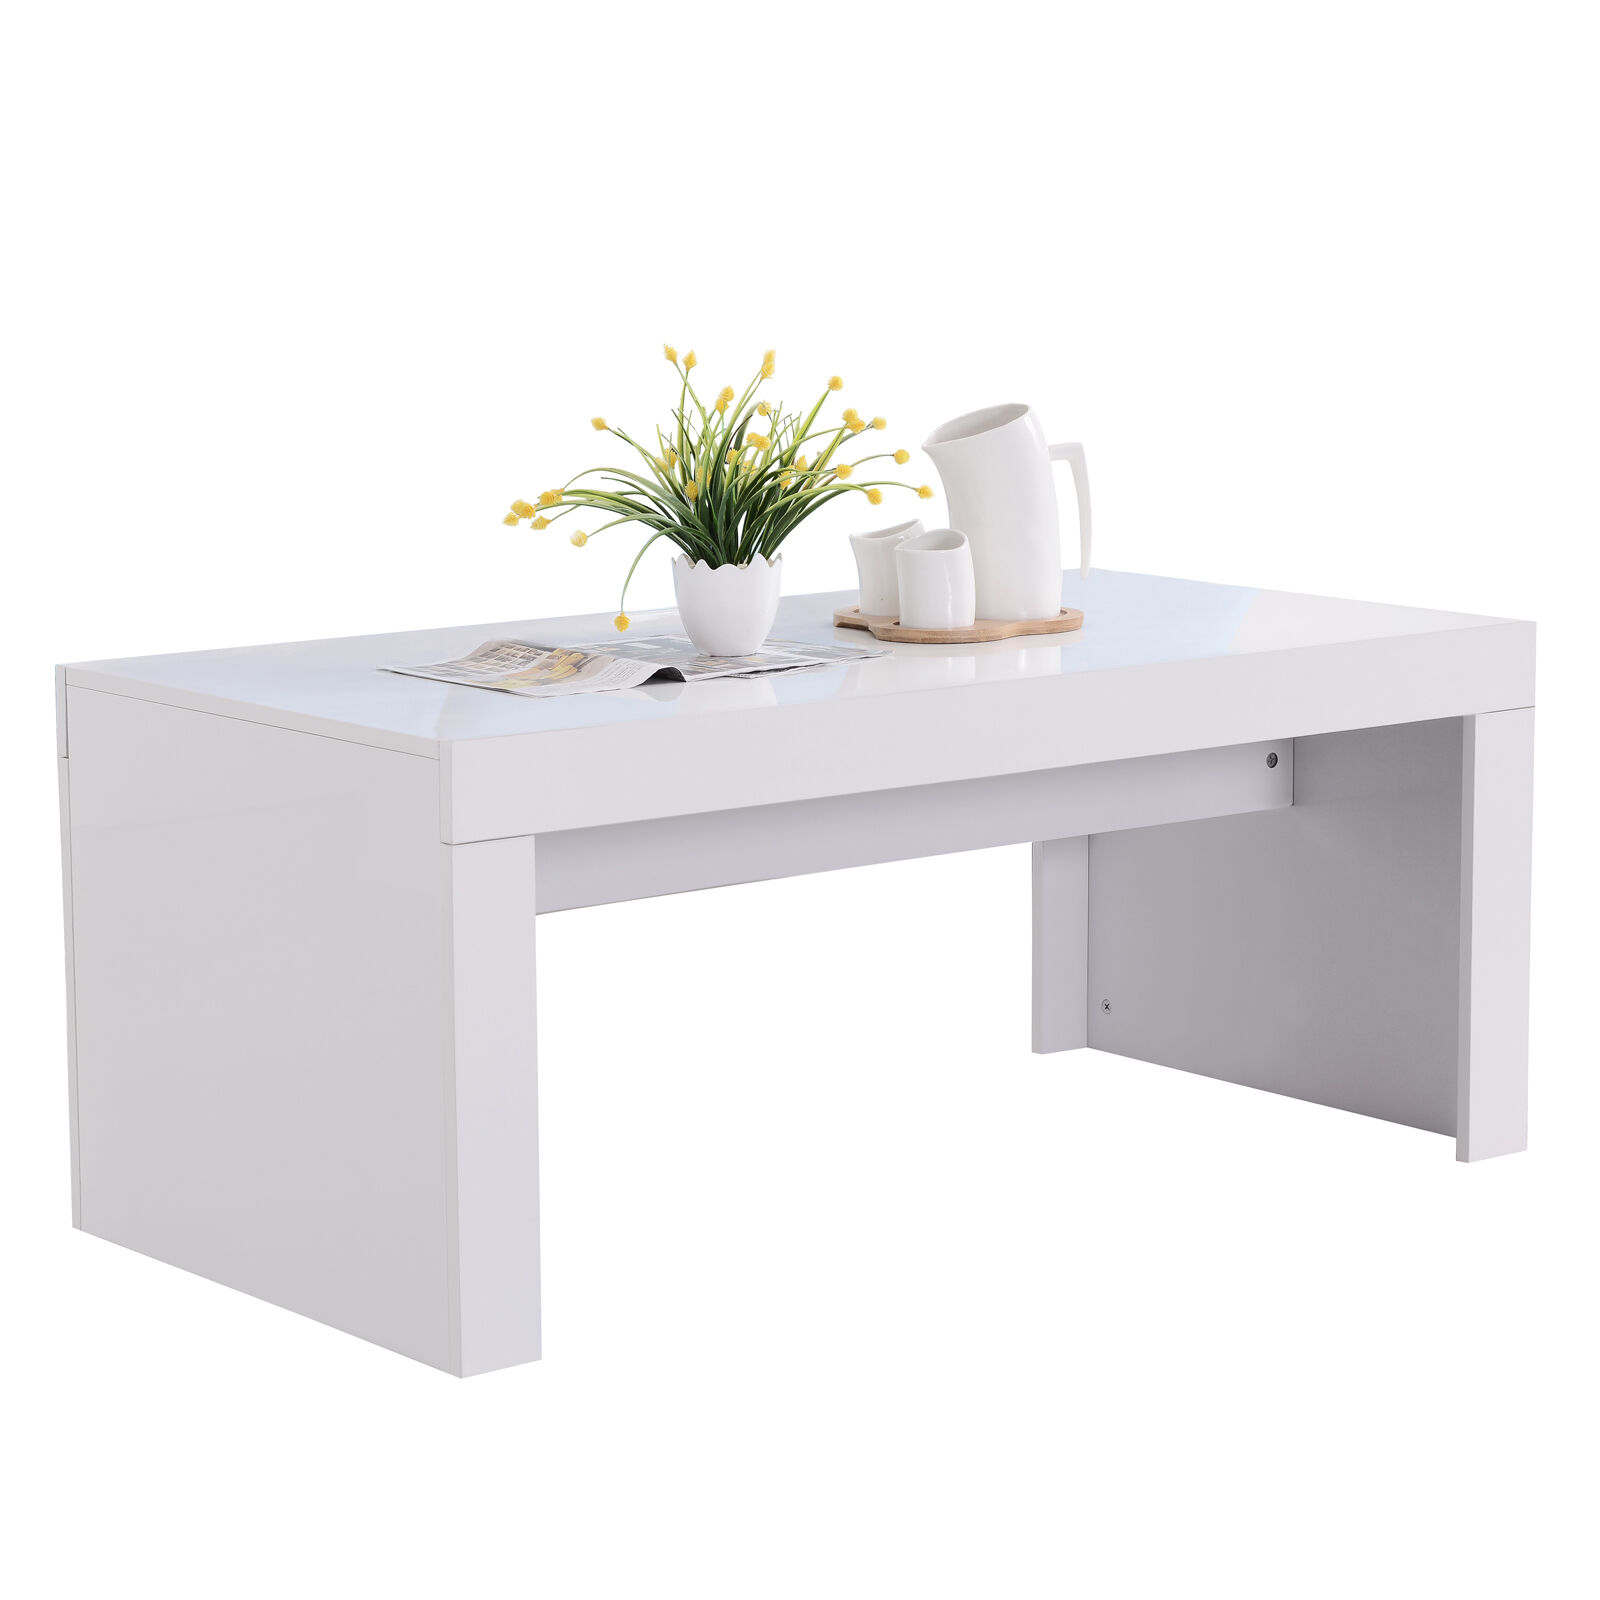 New modern high gloss white rectangle coffee table living for White gloss furniture for living room